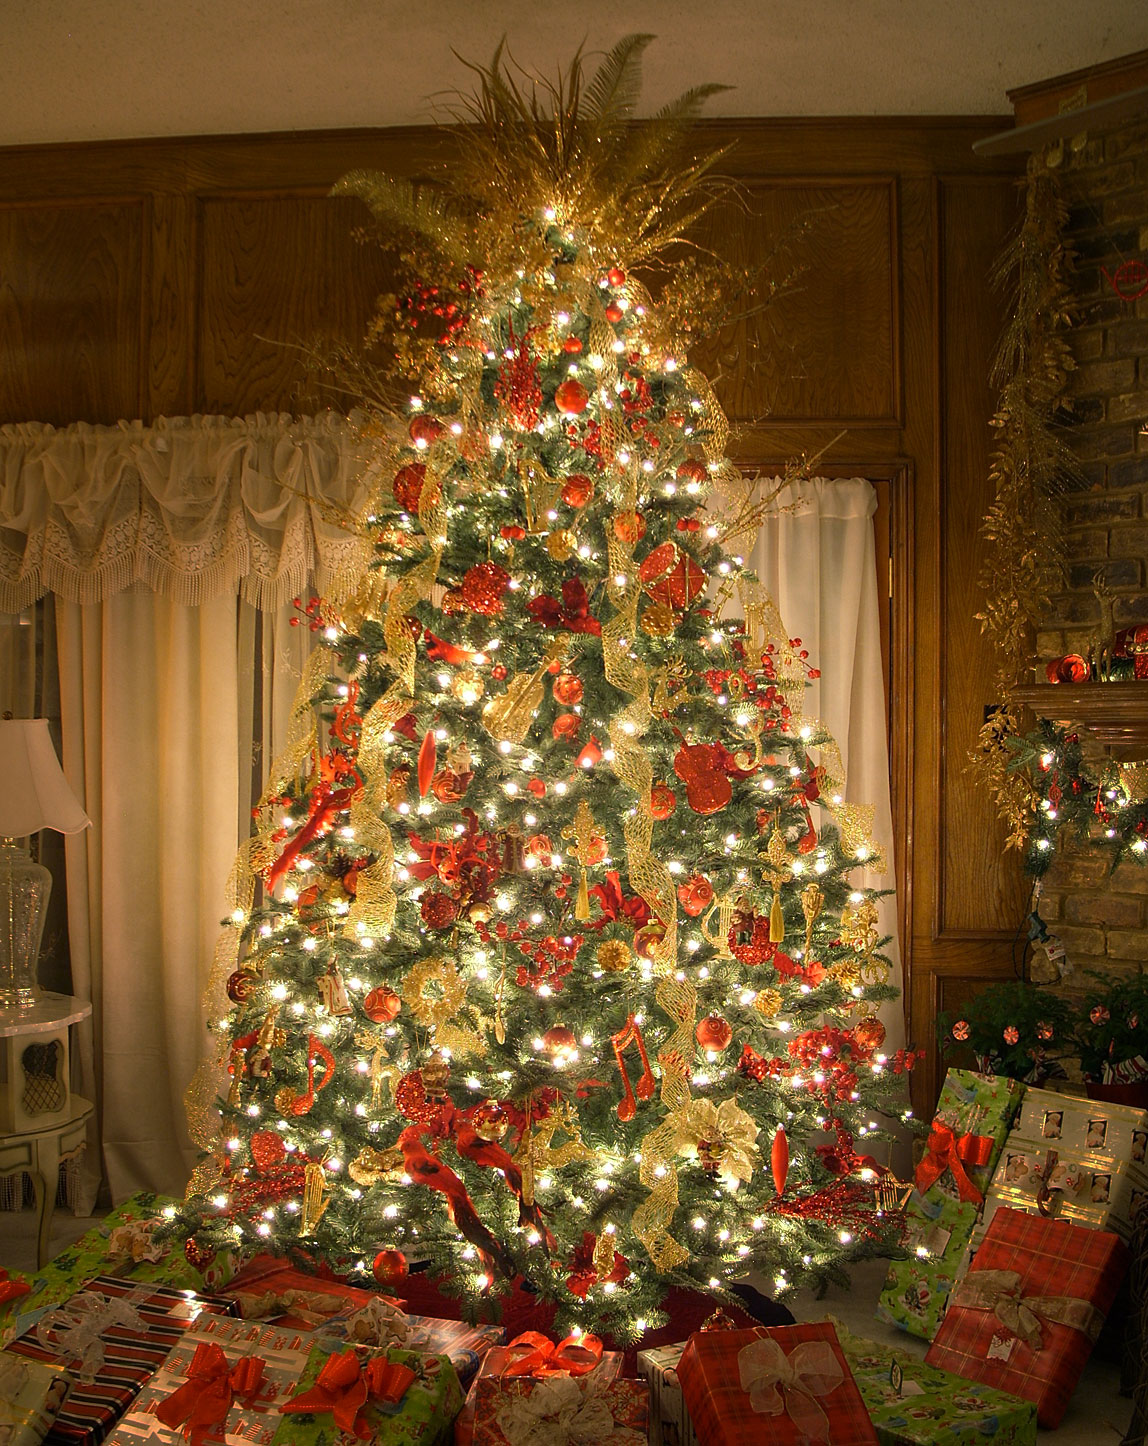 decorated-christmas-trees-ideas